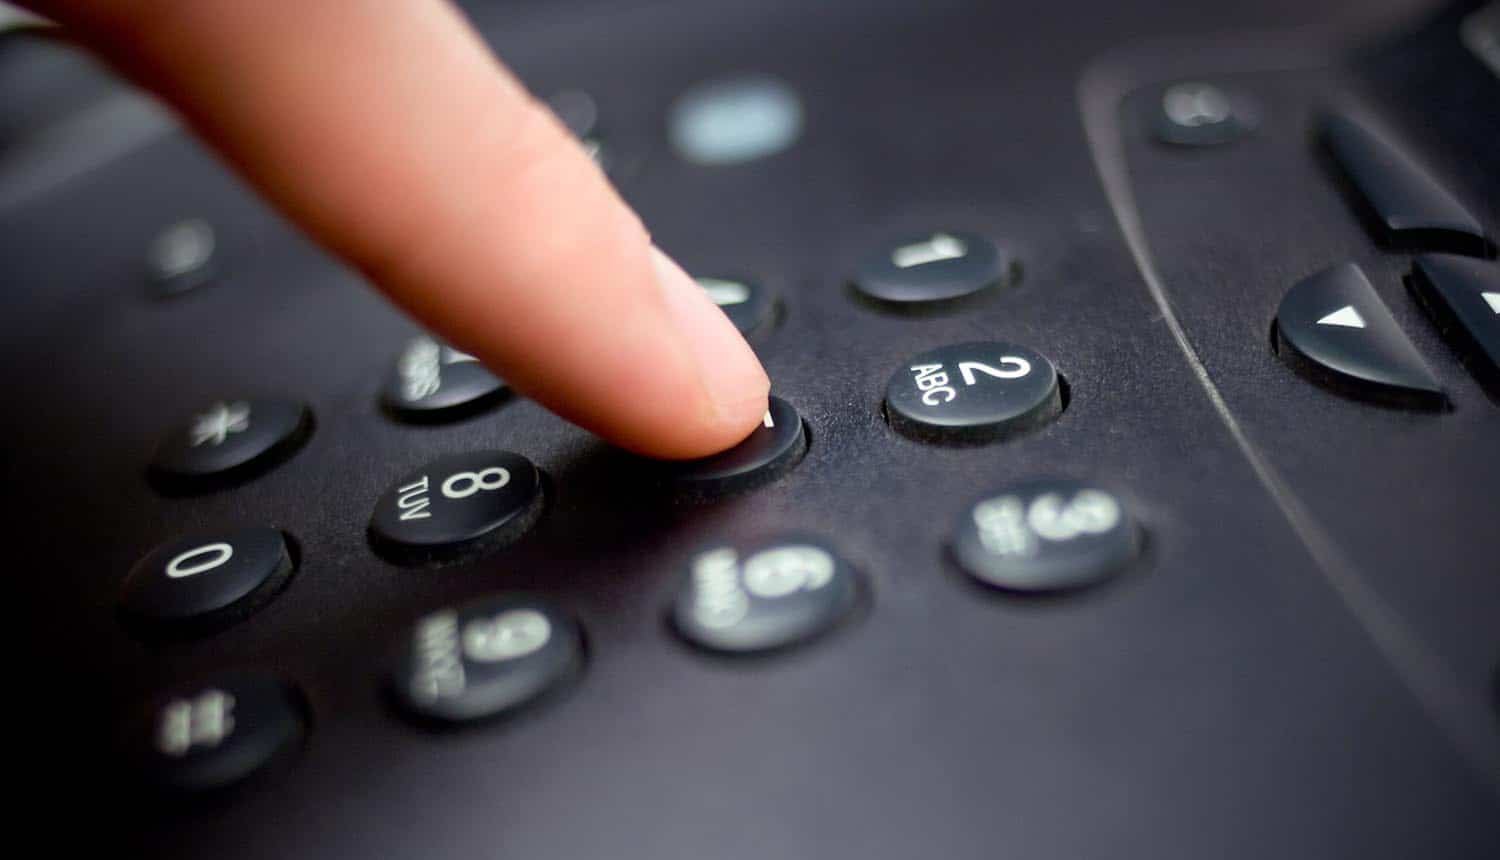 Hand dialling on telephone keyboard showing 100,000 inboxes of remote workers fallen victim to voicemail phishing attacks